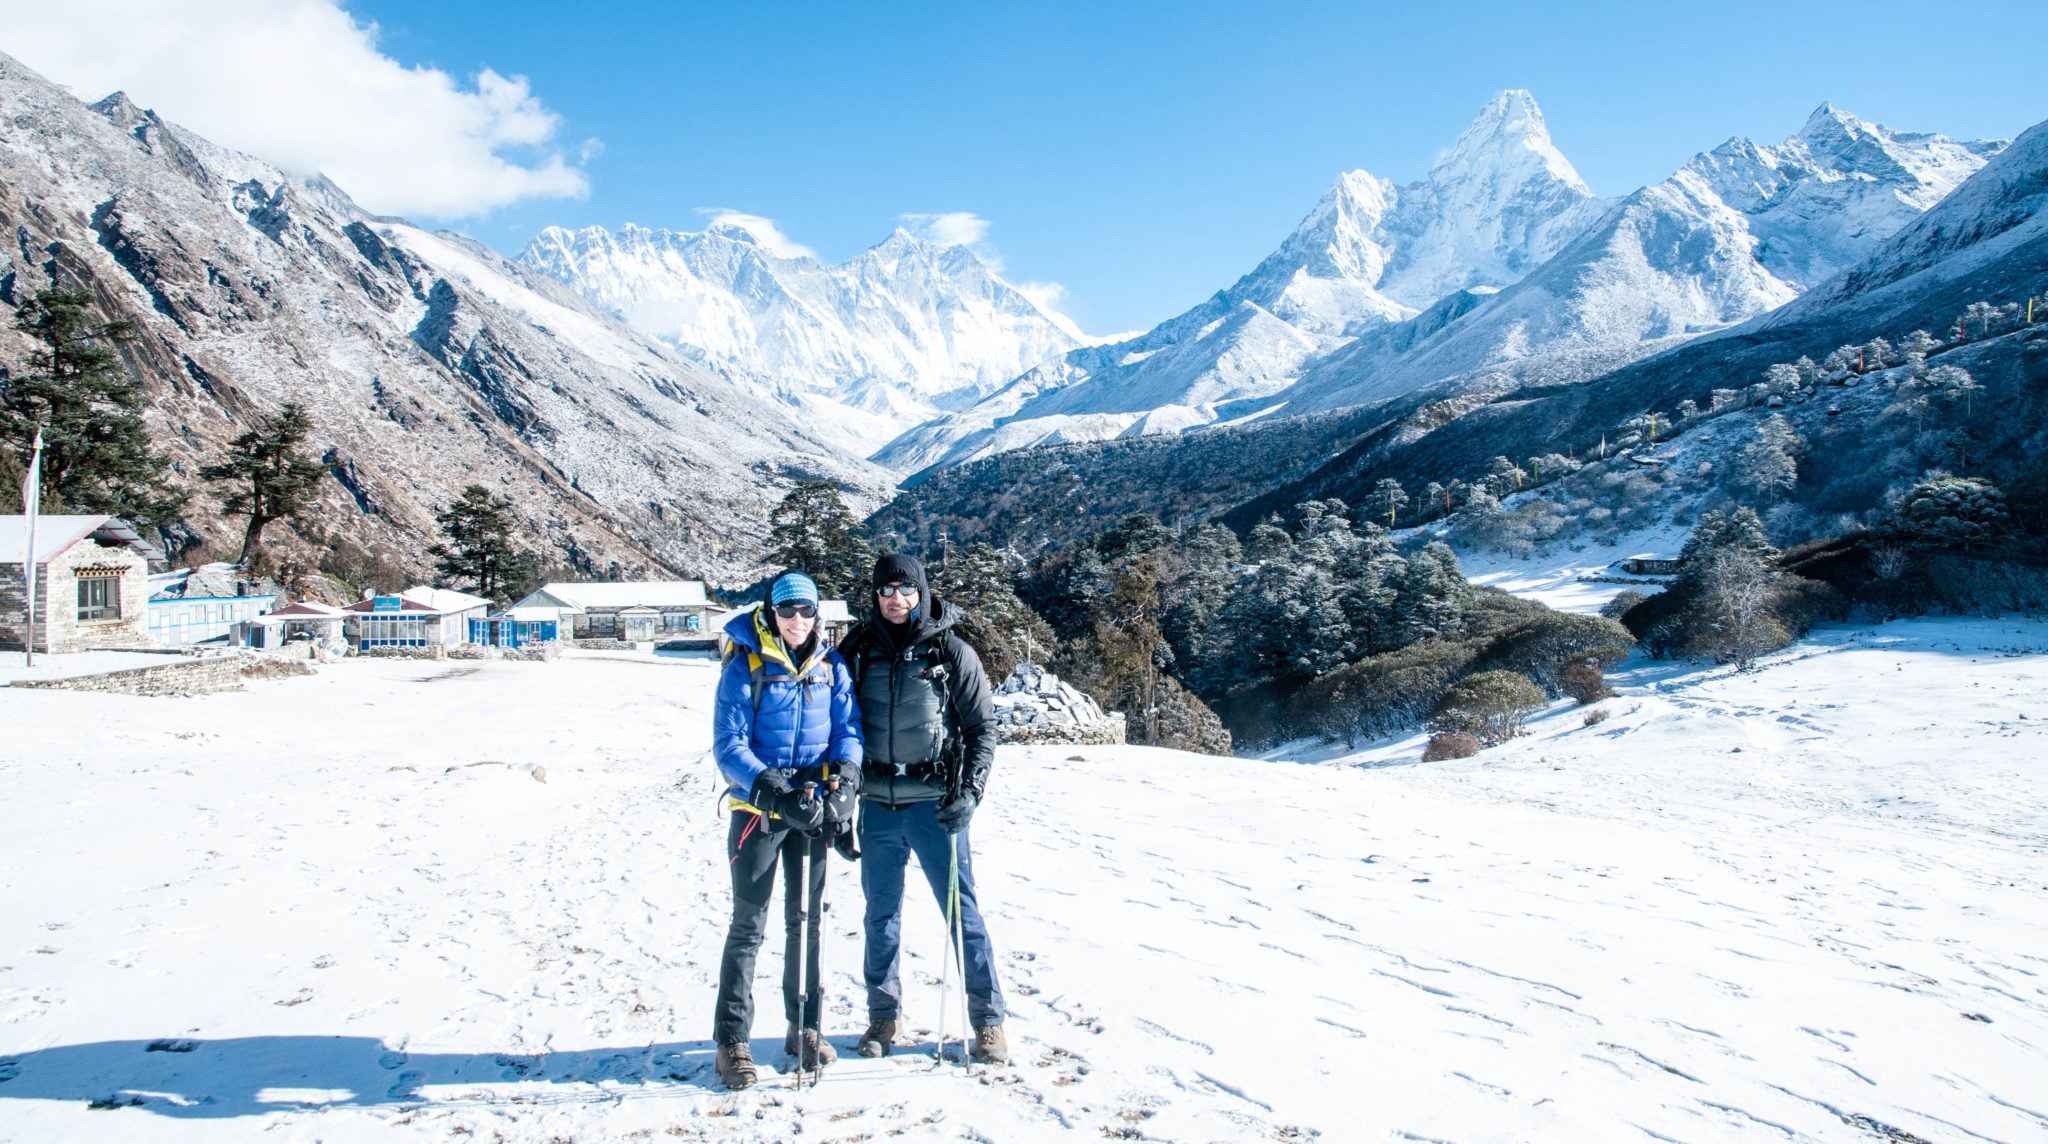 Julie and Shawn leaving Tengboche for Pangboche in the morning. Mount Everest's peak is just visible behind the background mountains.